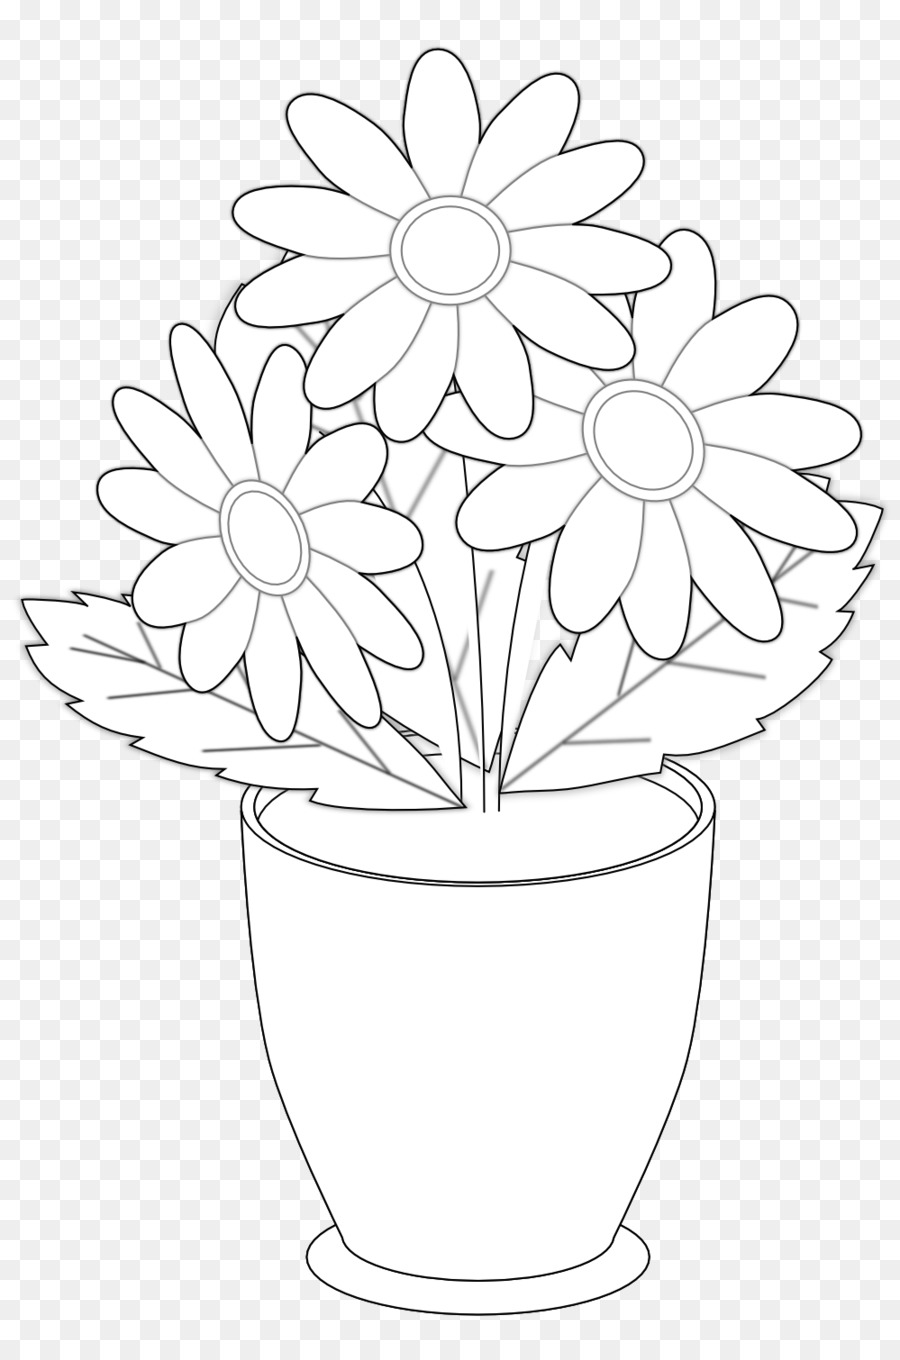 Clipart black and white flowers in a vase vector transparent Black And White Flower png download - 999*1491 - Free Transparent ... vector transparent